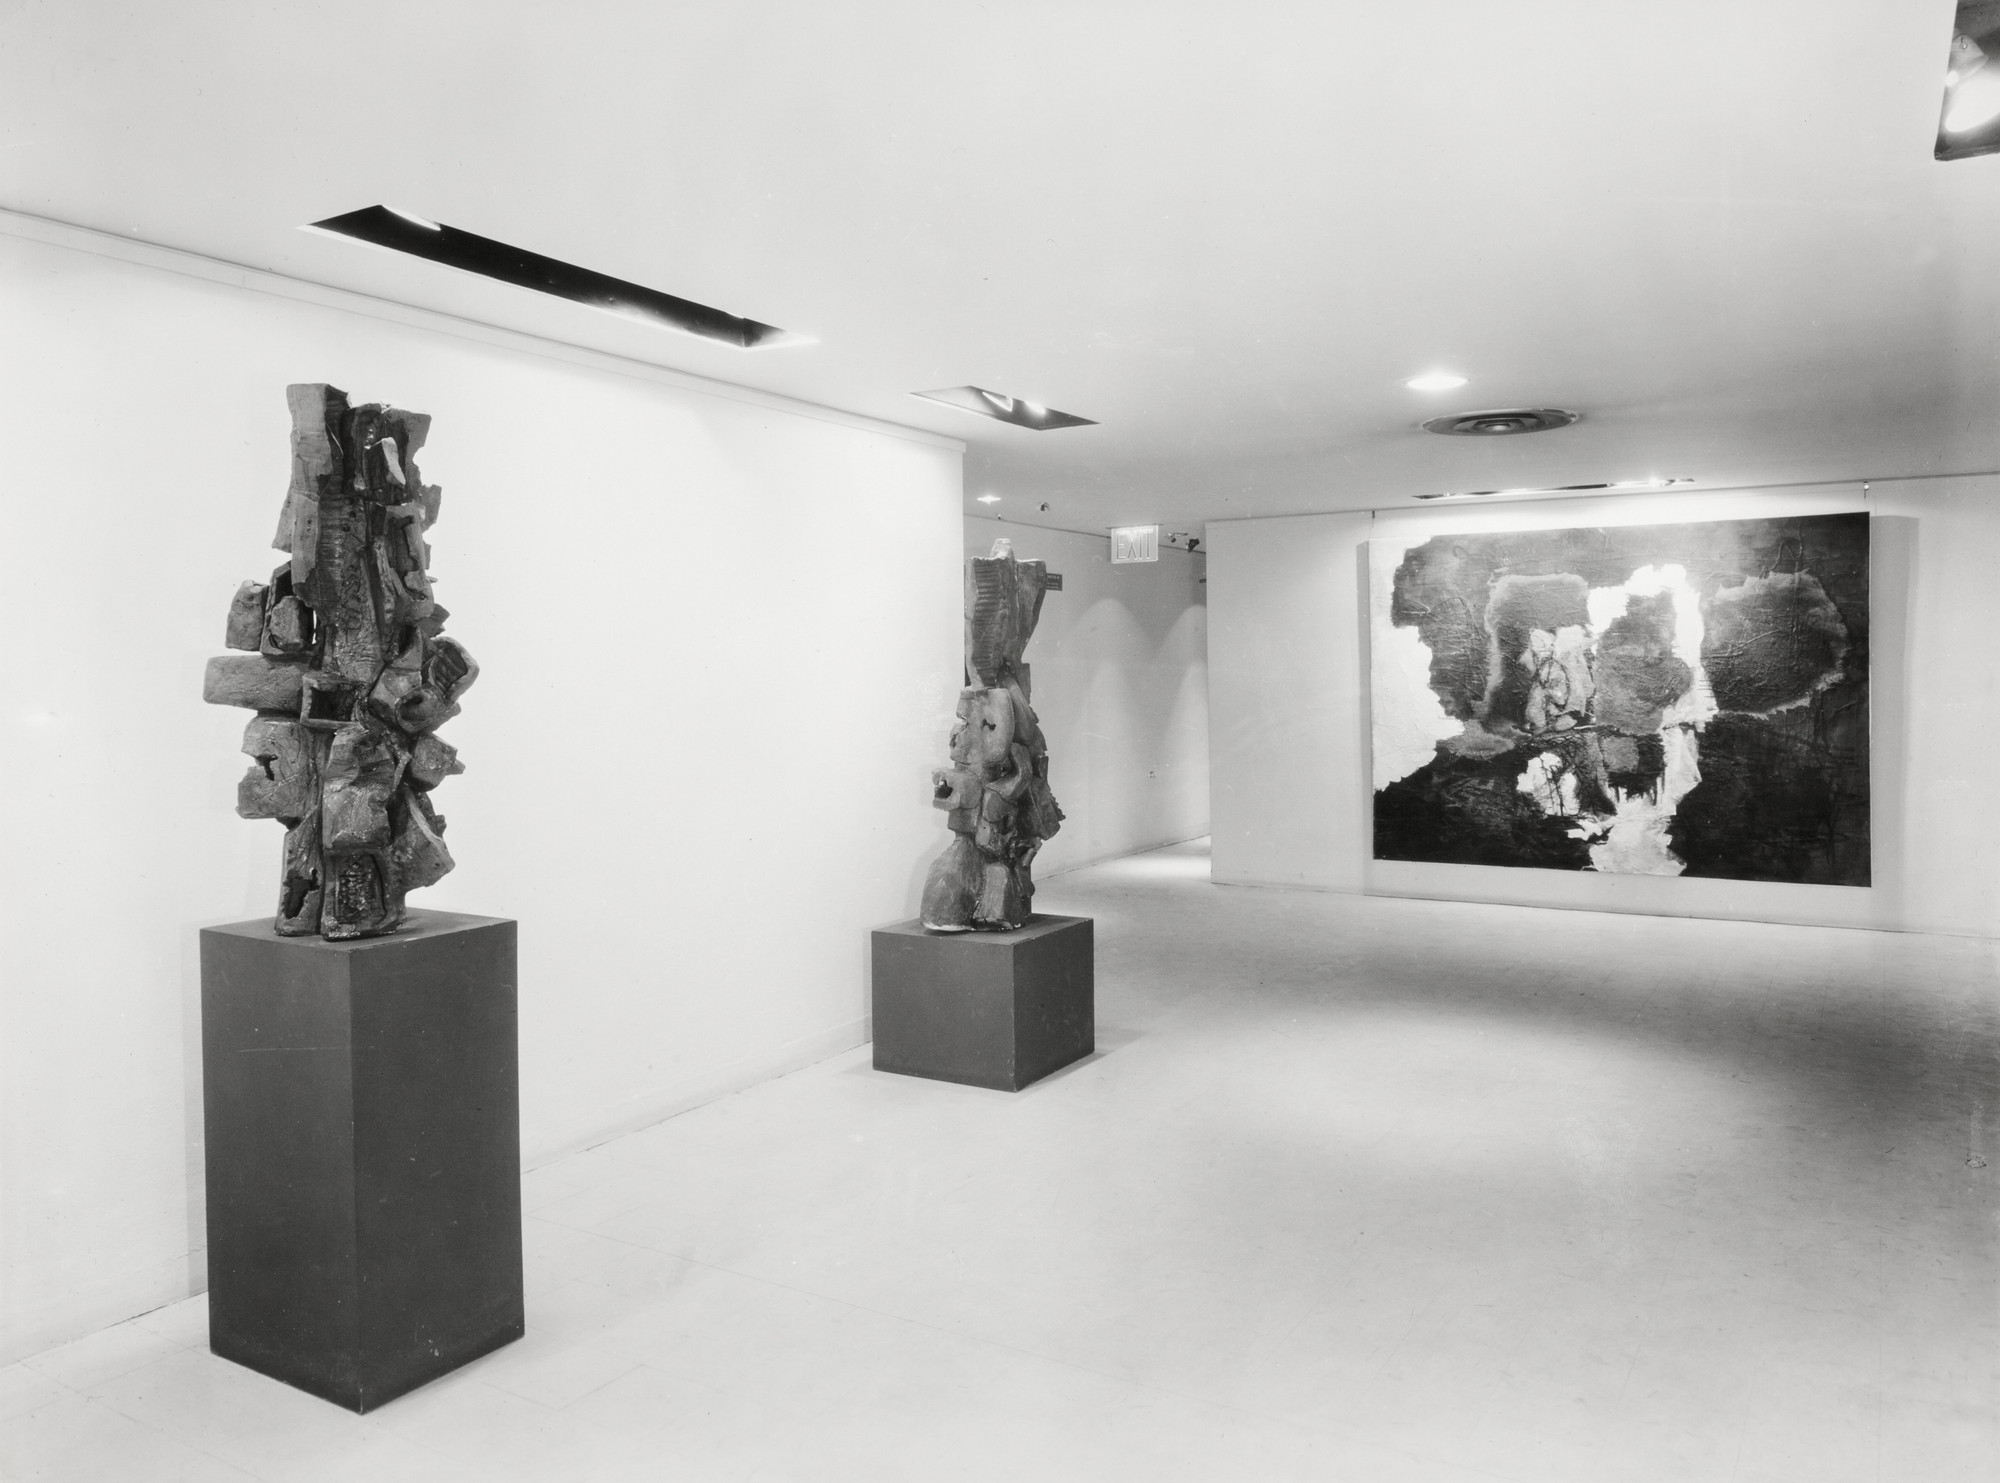 "Installation view of the exhibition, ""New Talent XIII - Peter Voulkos"" February 1, 1960–March 13, 1960. The Museum of Modern Art Exhibition Records, 658.3. The Museum of Modern Art Archives, New York. IN658.1. Photograph by Soichi Sunami."